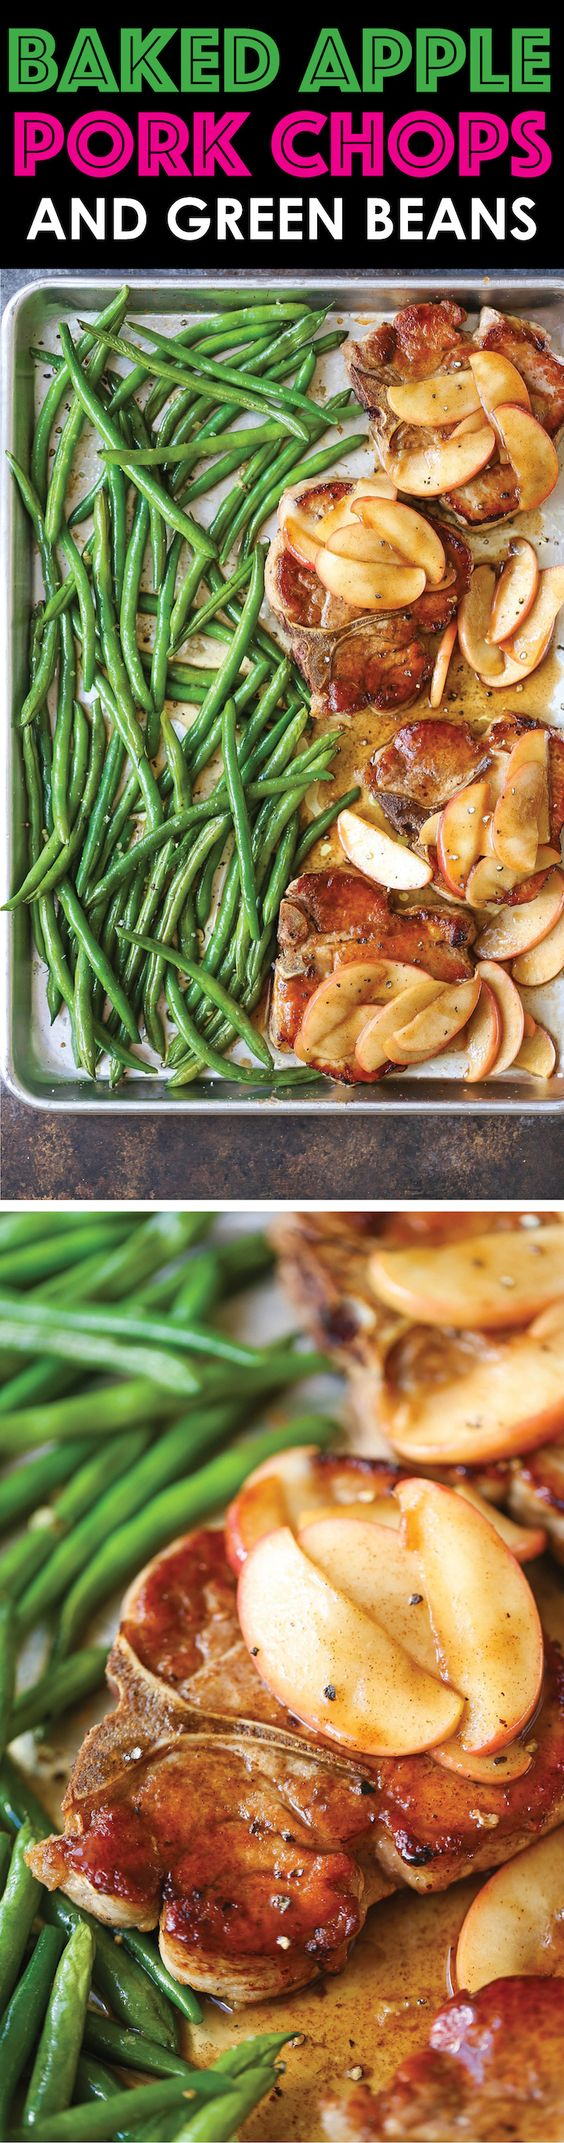 Baked Apple Pork Chops and Green Beans - A quick and easy sheet pan ...